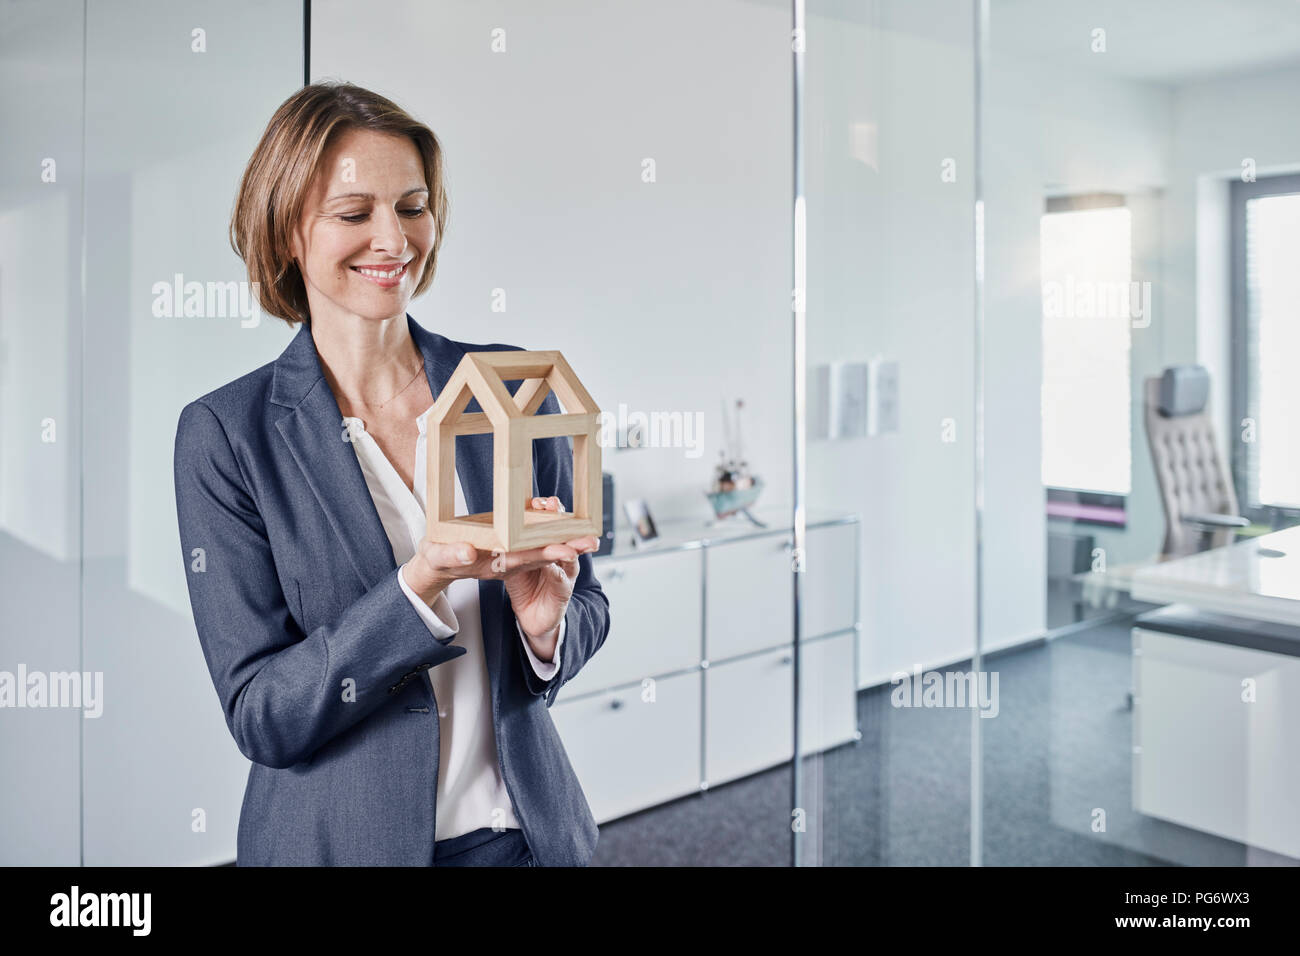 Smiling businesswoman looking at architectural model in office - Stock Image